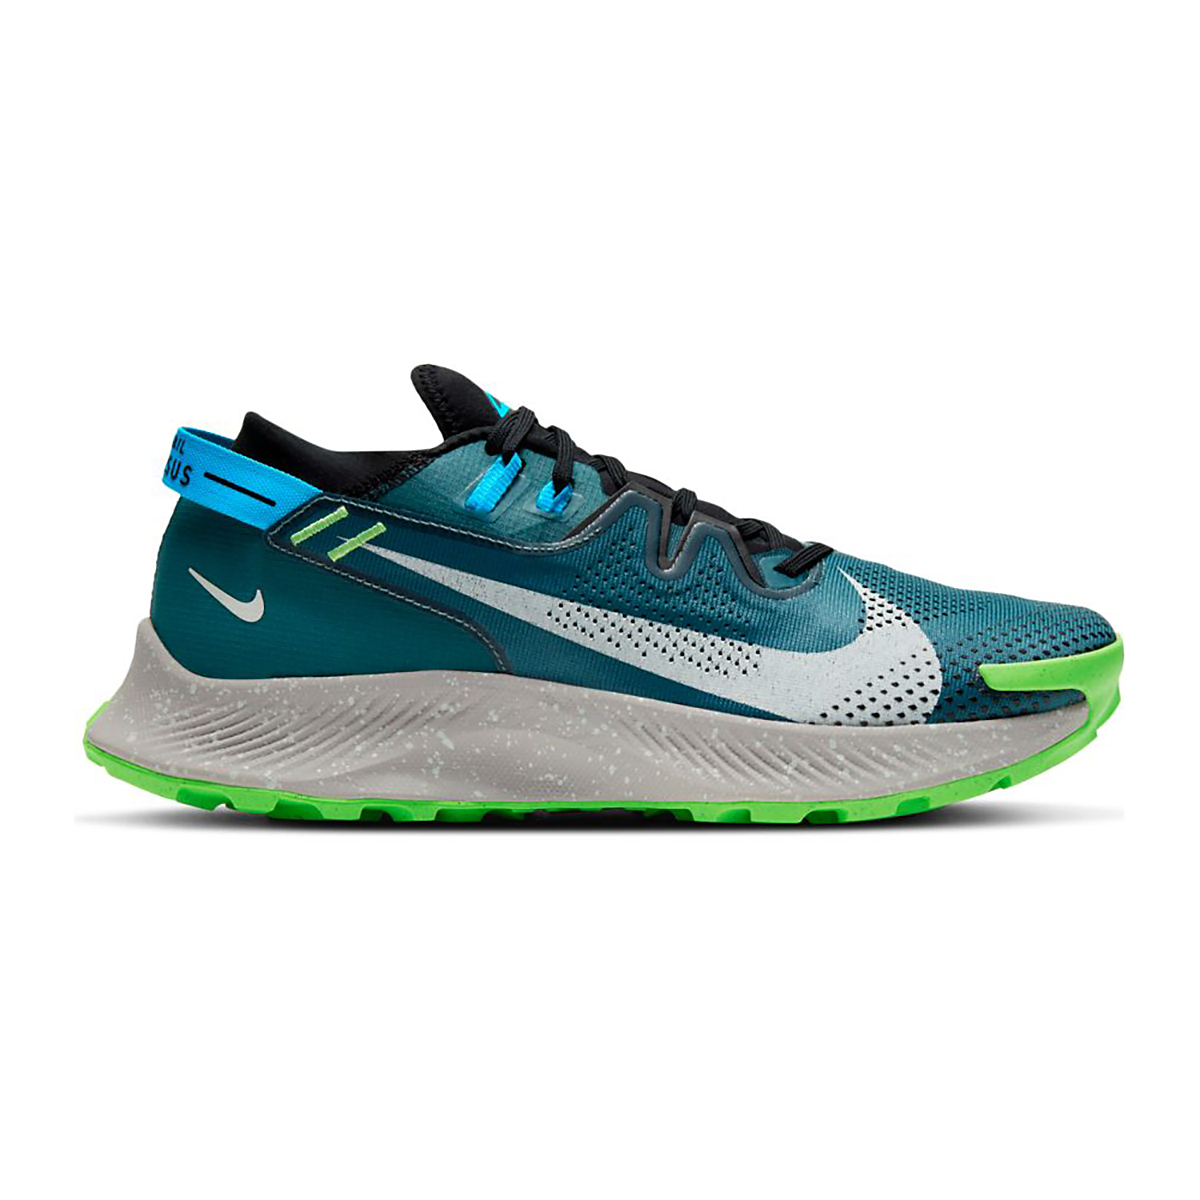 Men's Nike Nike Pegasus Trail 2 Trail Running Shoe - Color: Dark Teal Green/Silver/Black - Size: 6 - Width: Regular, Dark Teal Green/Silver/Black, large, image 1